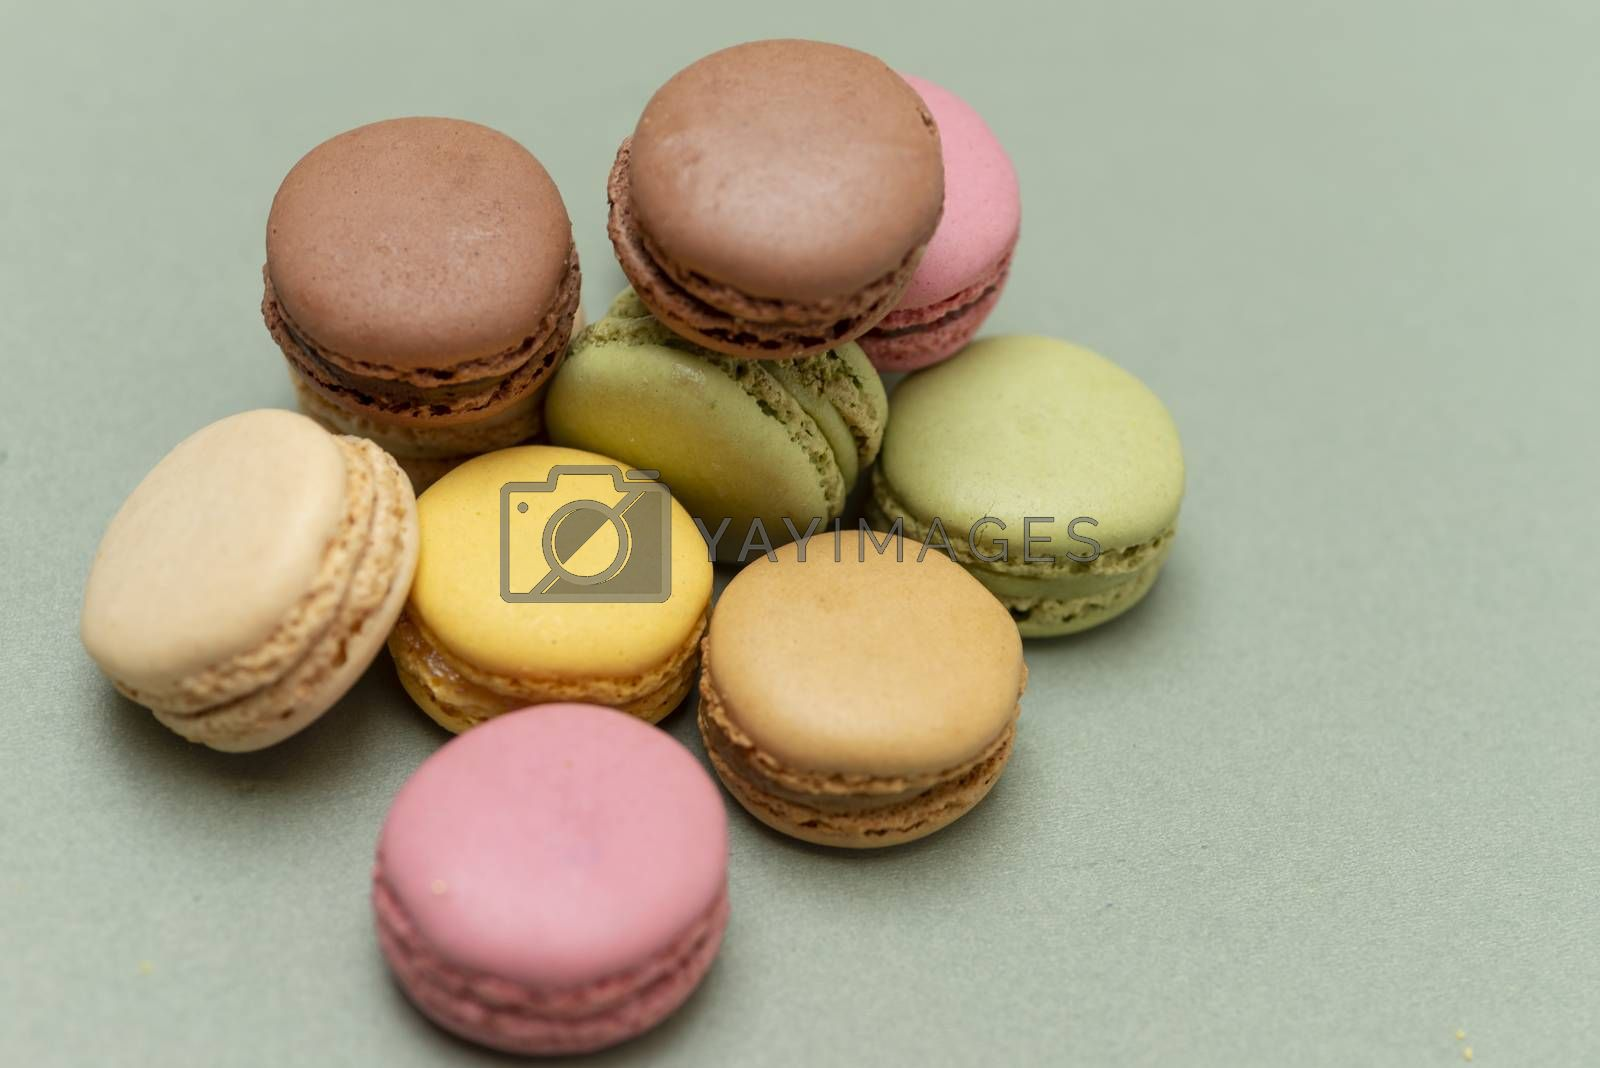 Assorted colored tasty macaroons over a green background.